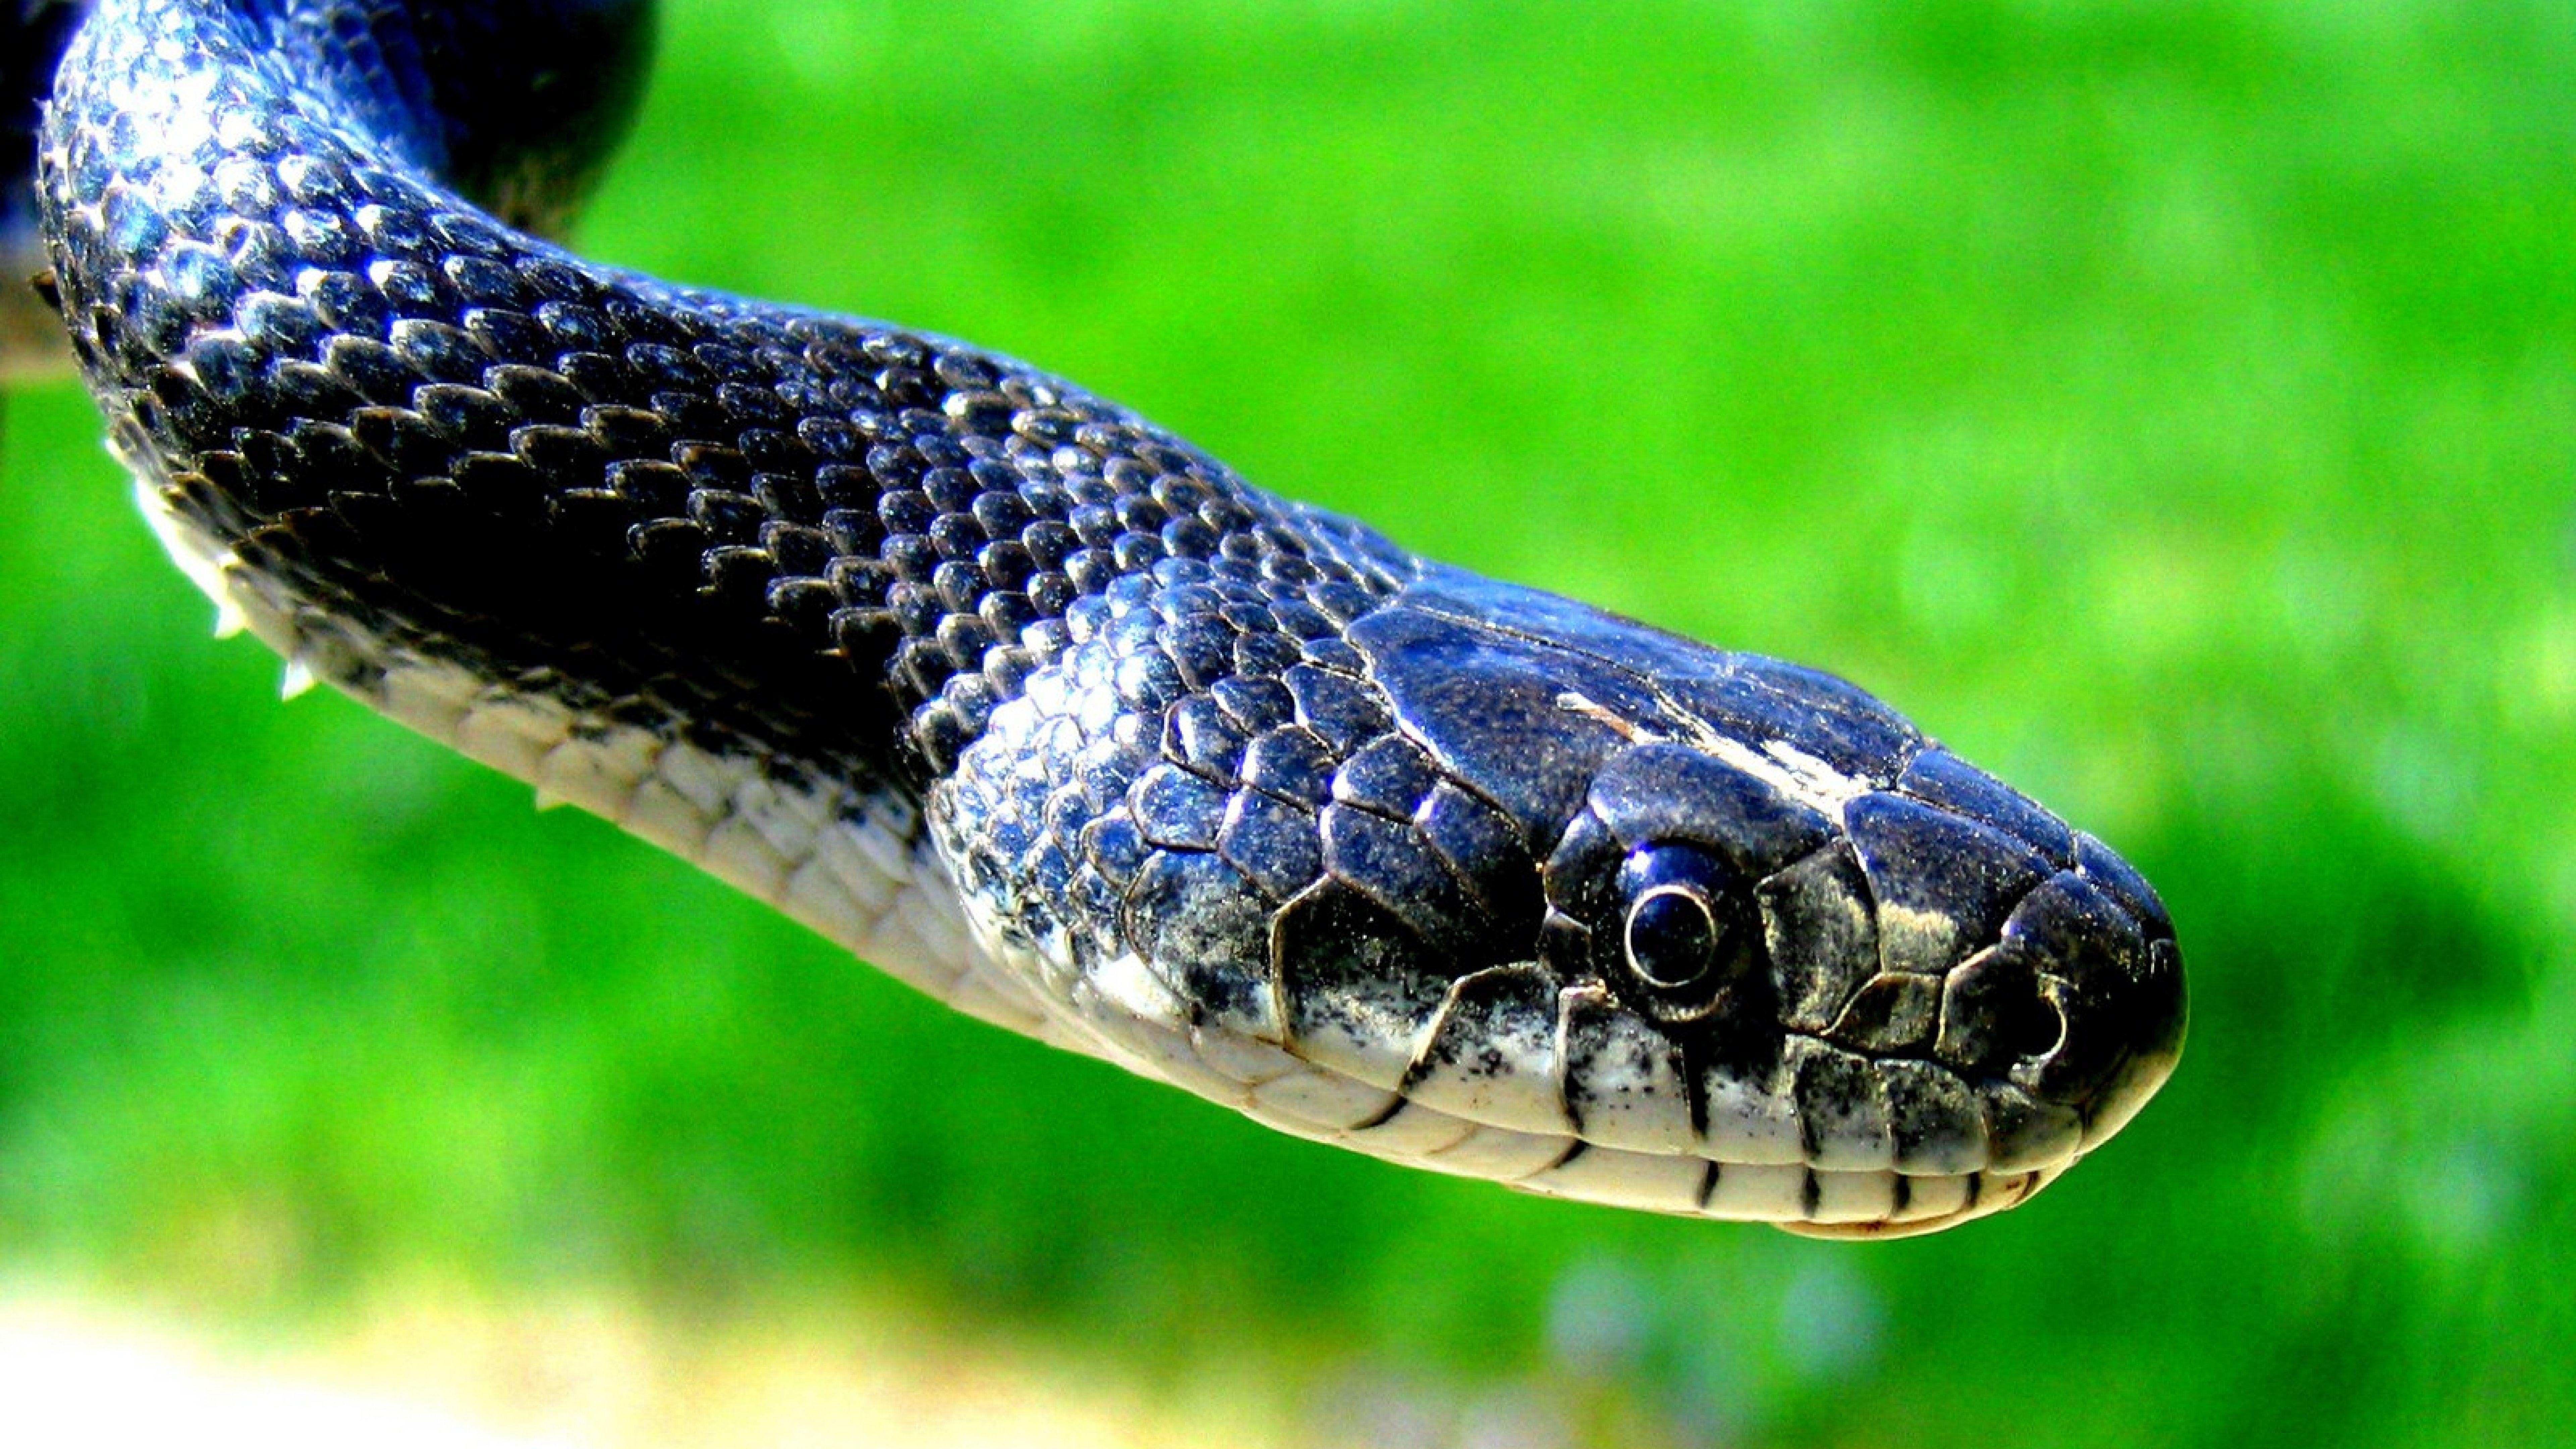 Free Black Mamba Snakes Hd Wallpapers Best Desktop Backgrounds Image